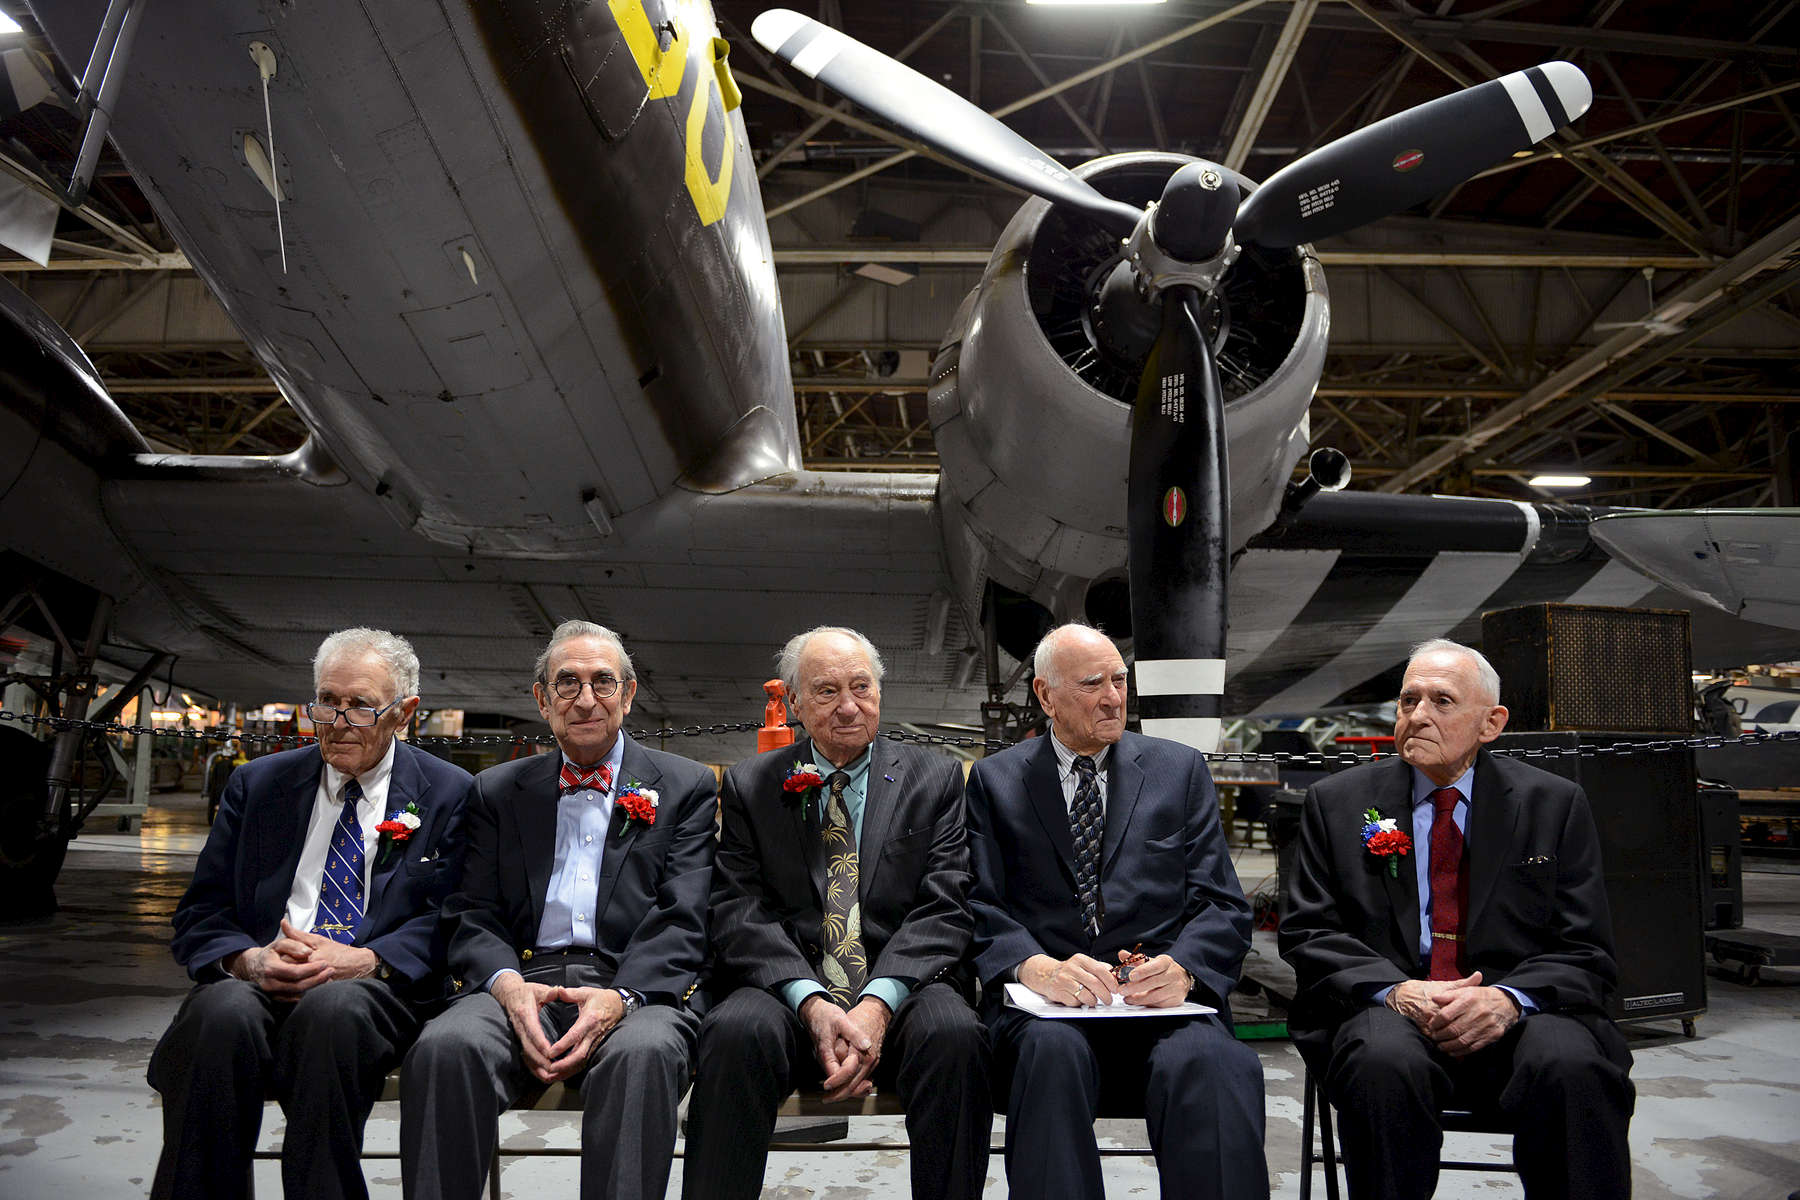 Judges of the Eastern District of New York, veterans of World War II, were honored at the American Airpower Museum, Republic Airport, Farmingdale, NYLeft to right: Thomas Platt, 87; I. Leo Glasser, 88; Leonard Wexler, 88; Jack Weinstein, 91 and Arthur Spatt, 86 - December, 2012